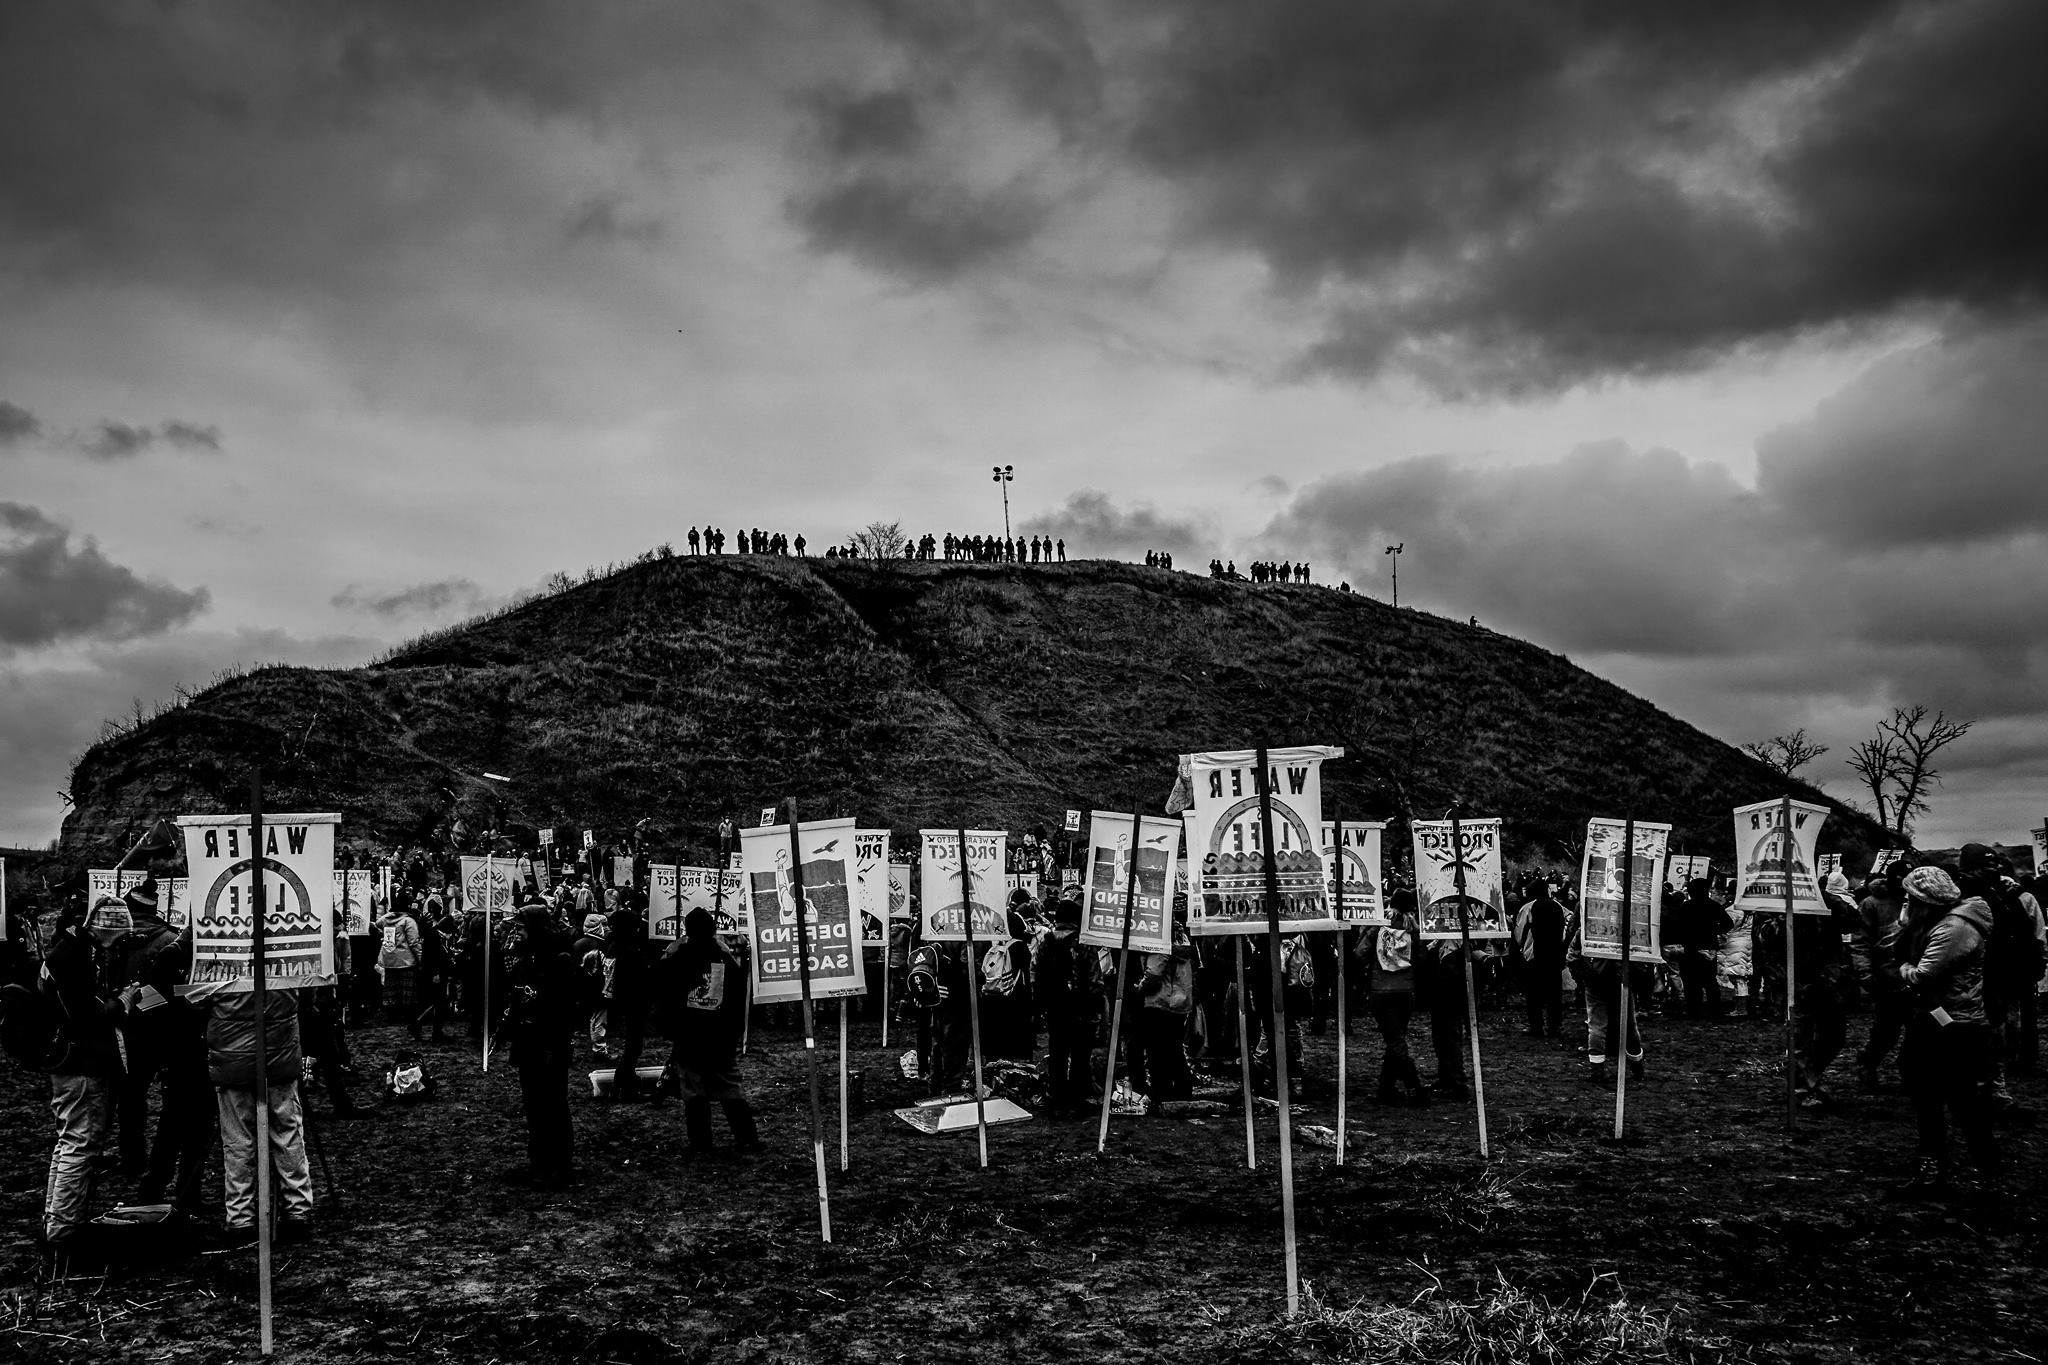 Matt Stannard: Public bank helps silence the #NoDAPL movement